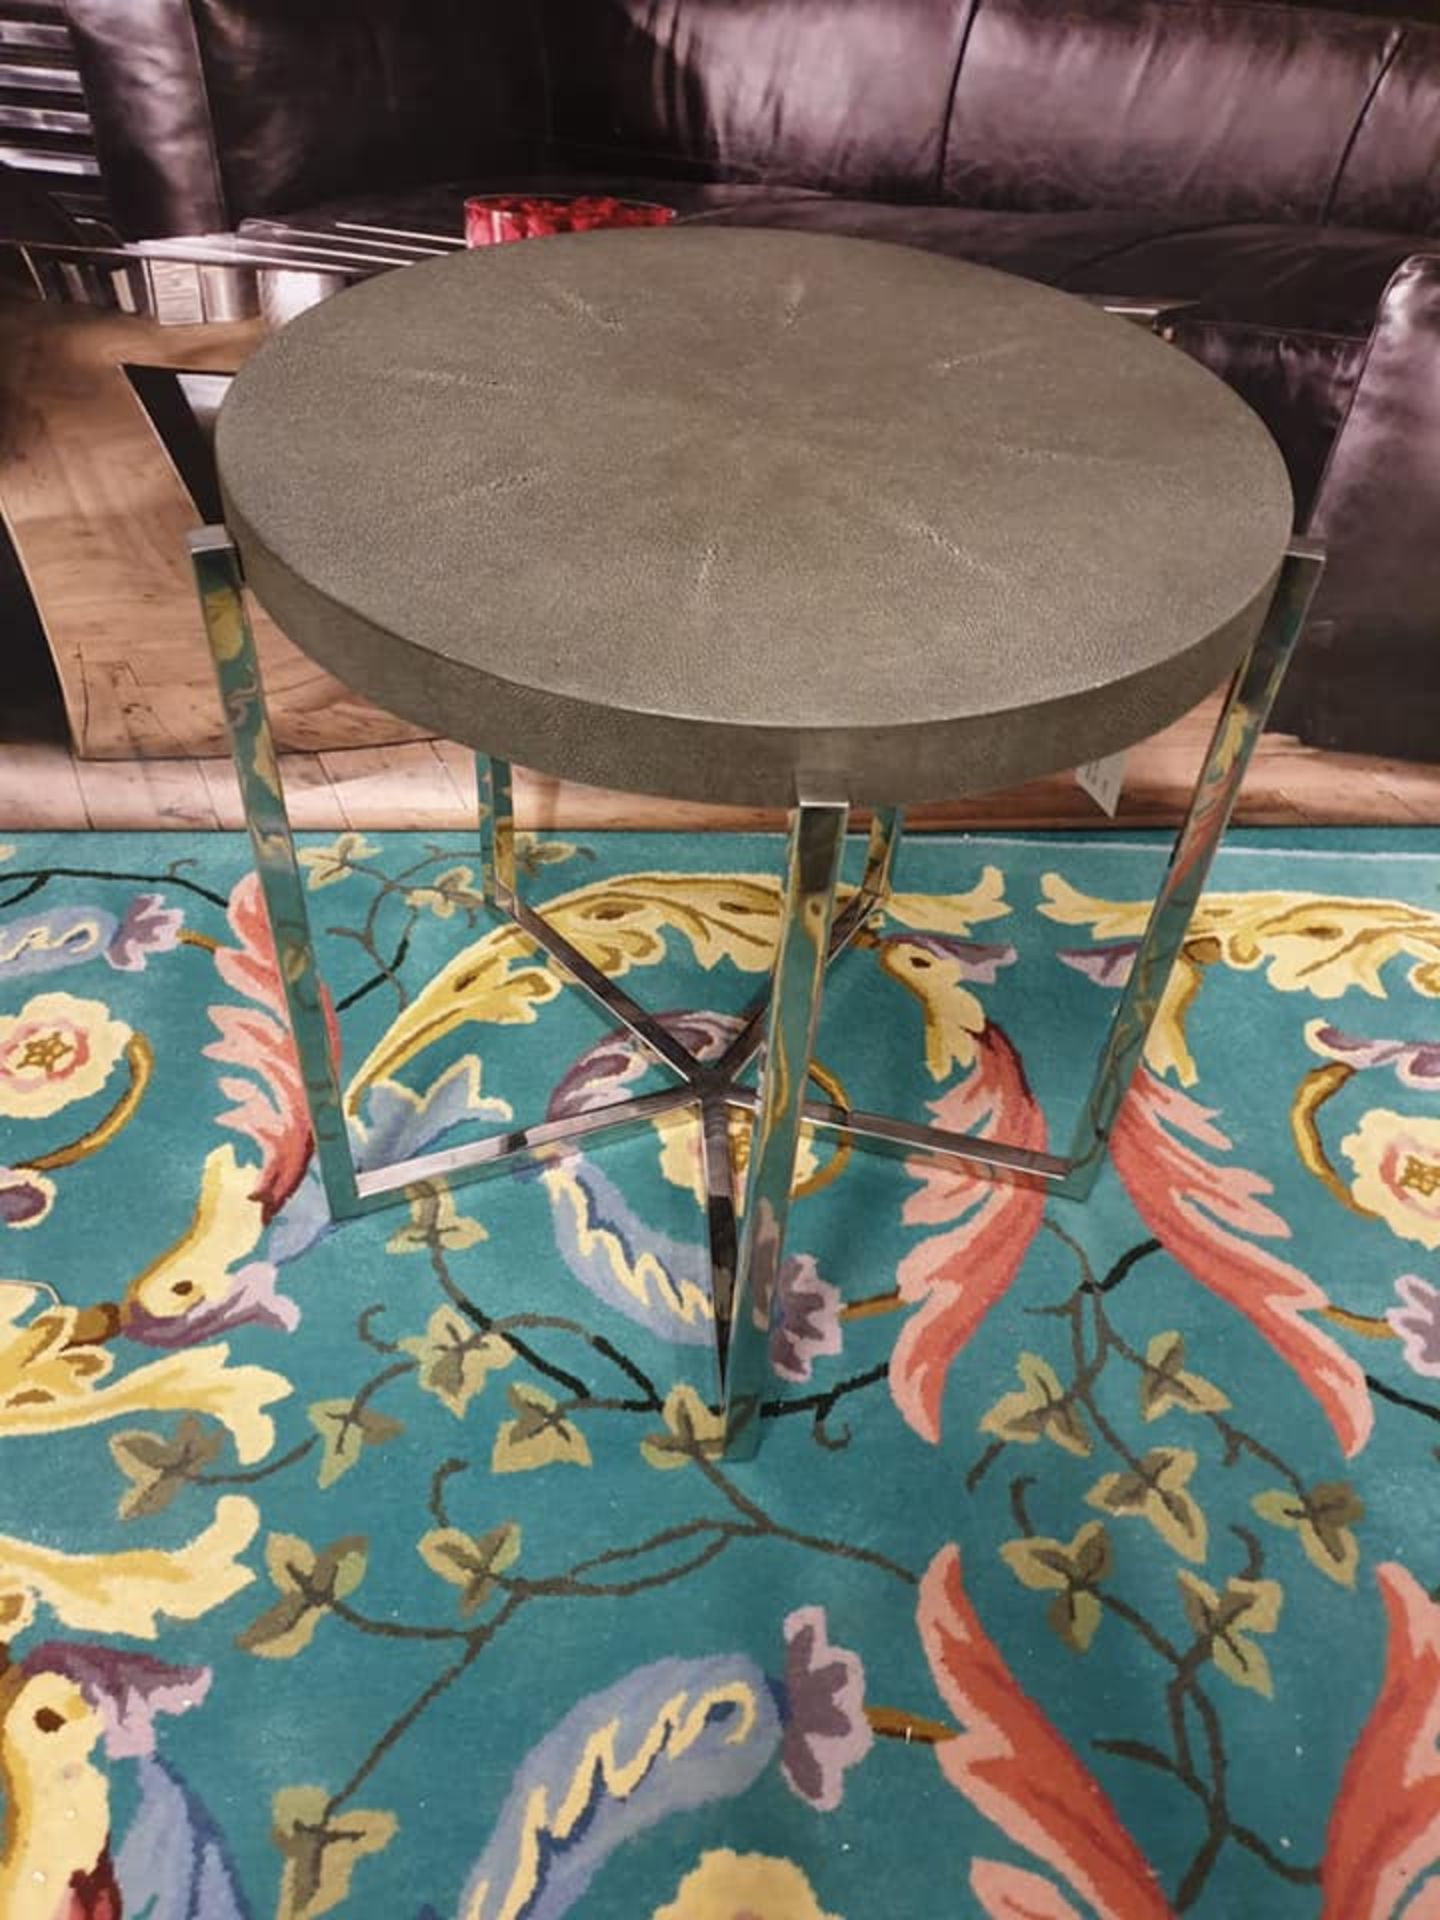 Lot 49 - Mildred Side Table Features A Circular Angled Polished Nickel Base And A Top Crafted From Grey